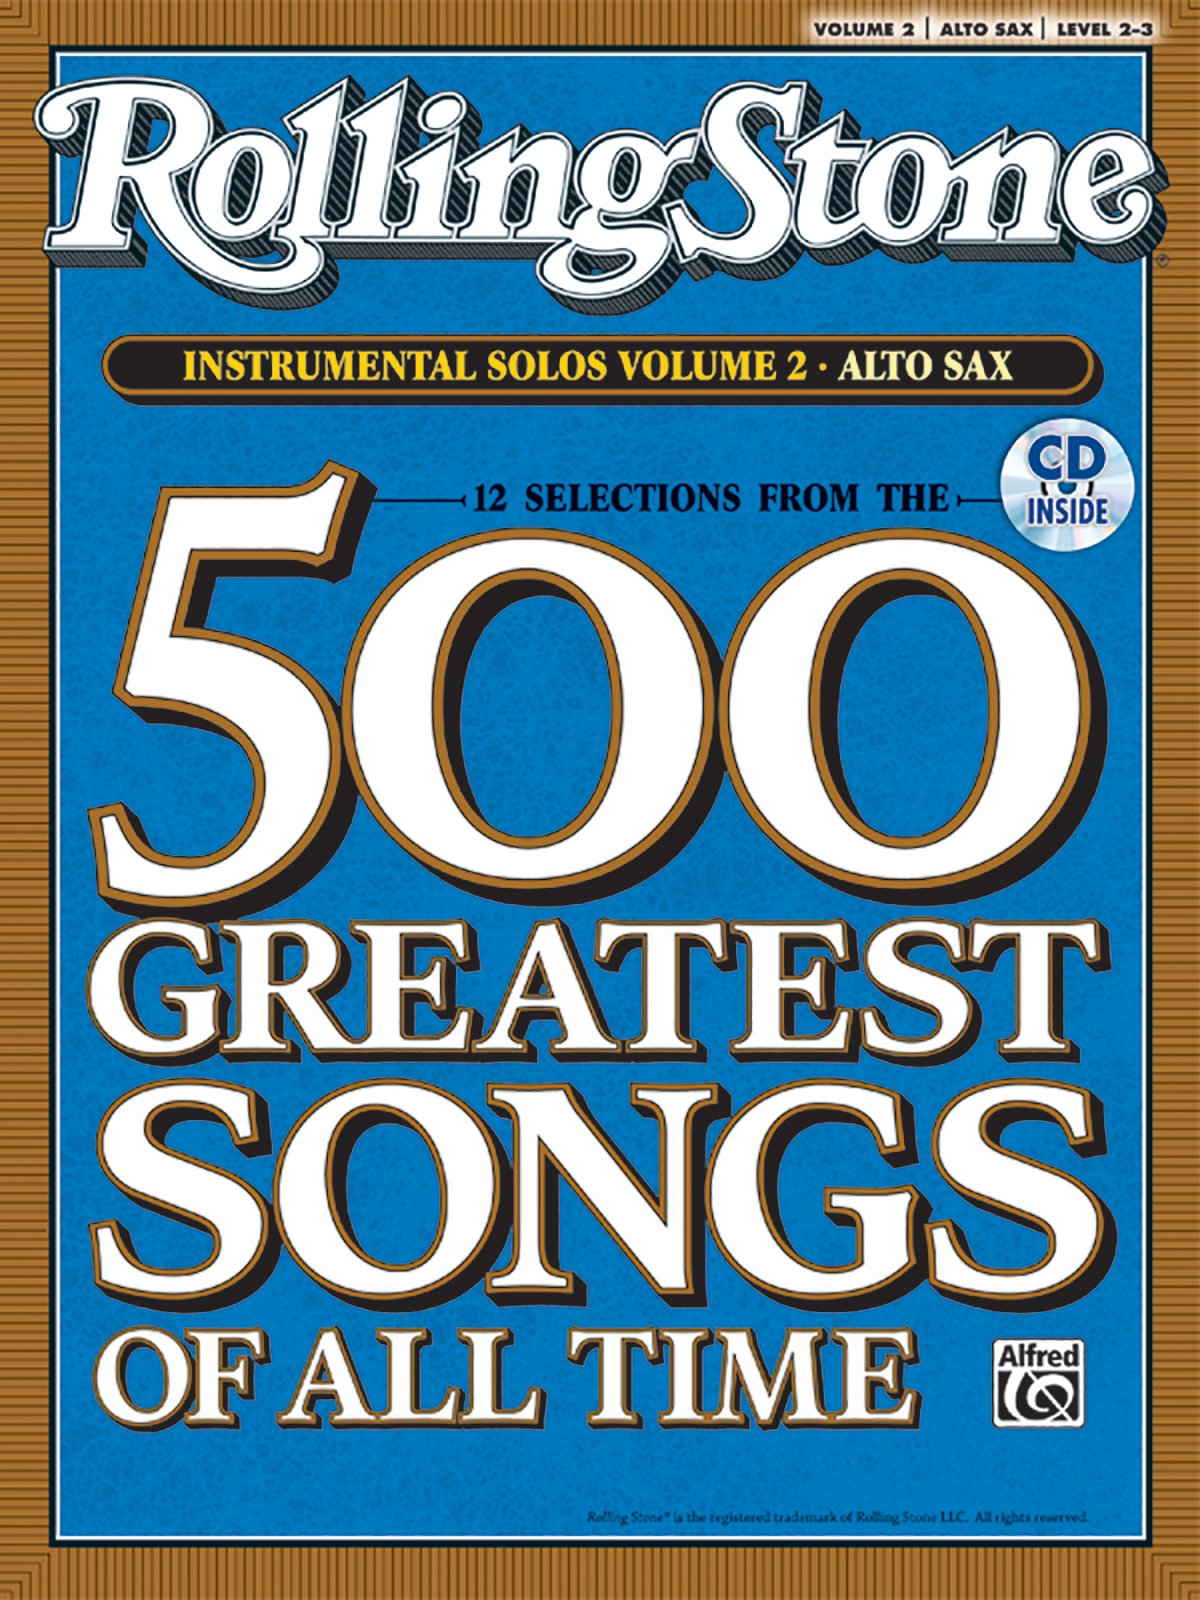 Download Selections from Rolling Stone Magazine's 500 Greatest Songs of All Time (Instrumental Solos), Vol 2: Alto Sax, Book & CD pdf